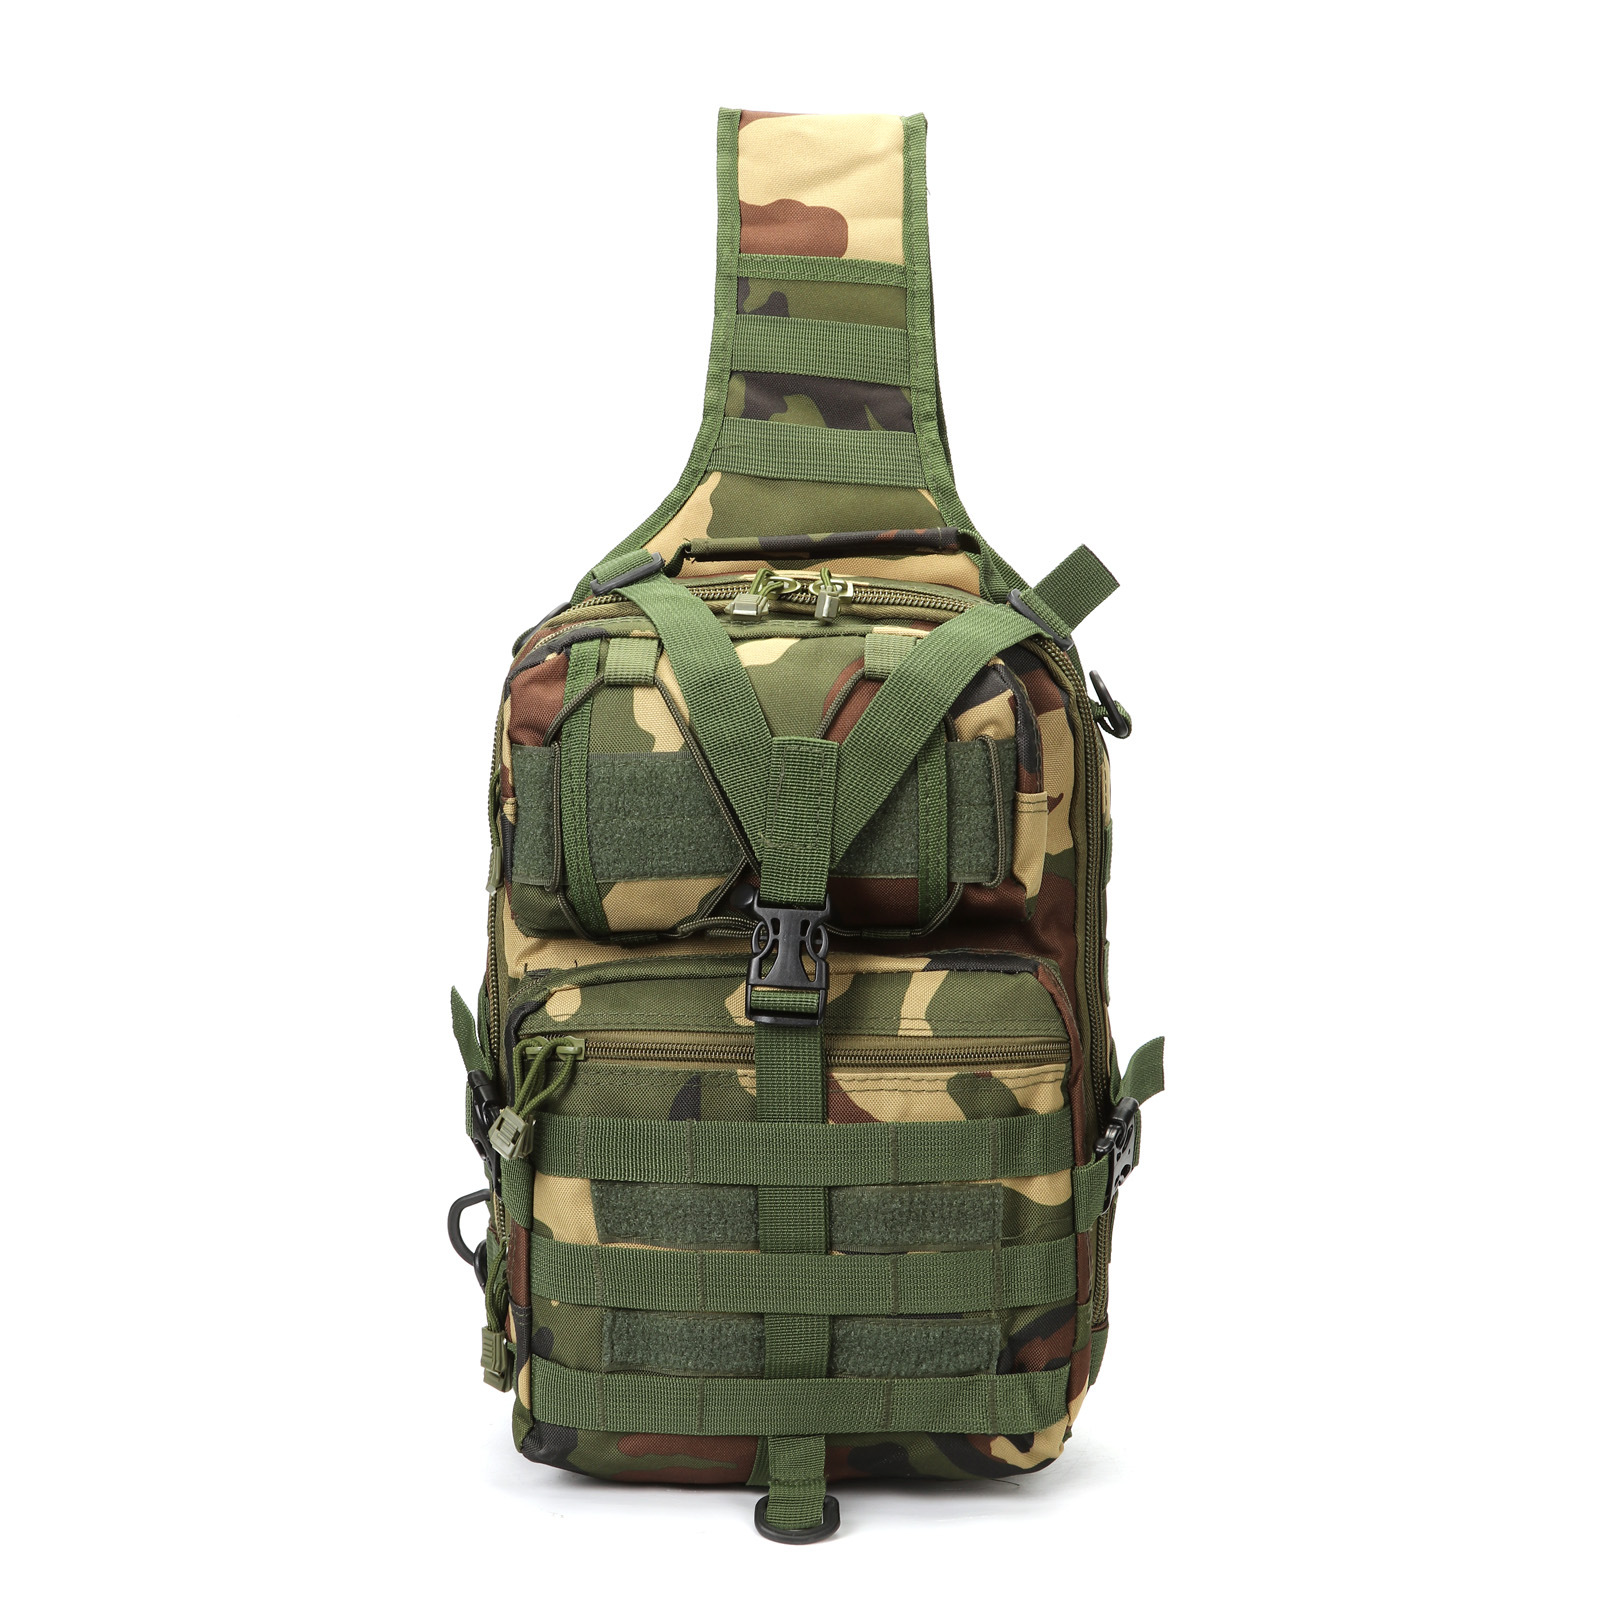 Outdoor Tactical Mountaineering Bag Mantis Moth Saddle Bag Chest Bag Army Fans Camouflage Tactical Shoulder Bag Manufacturers Di